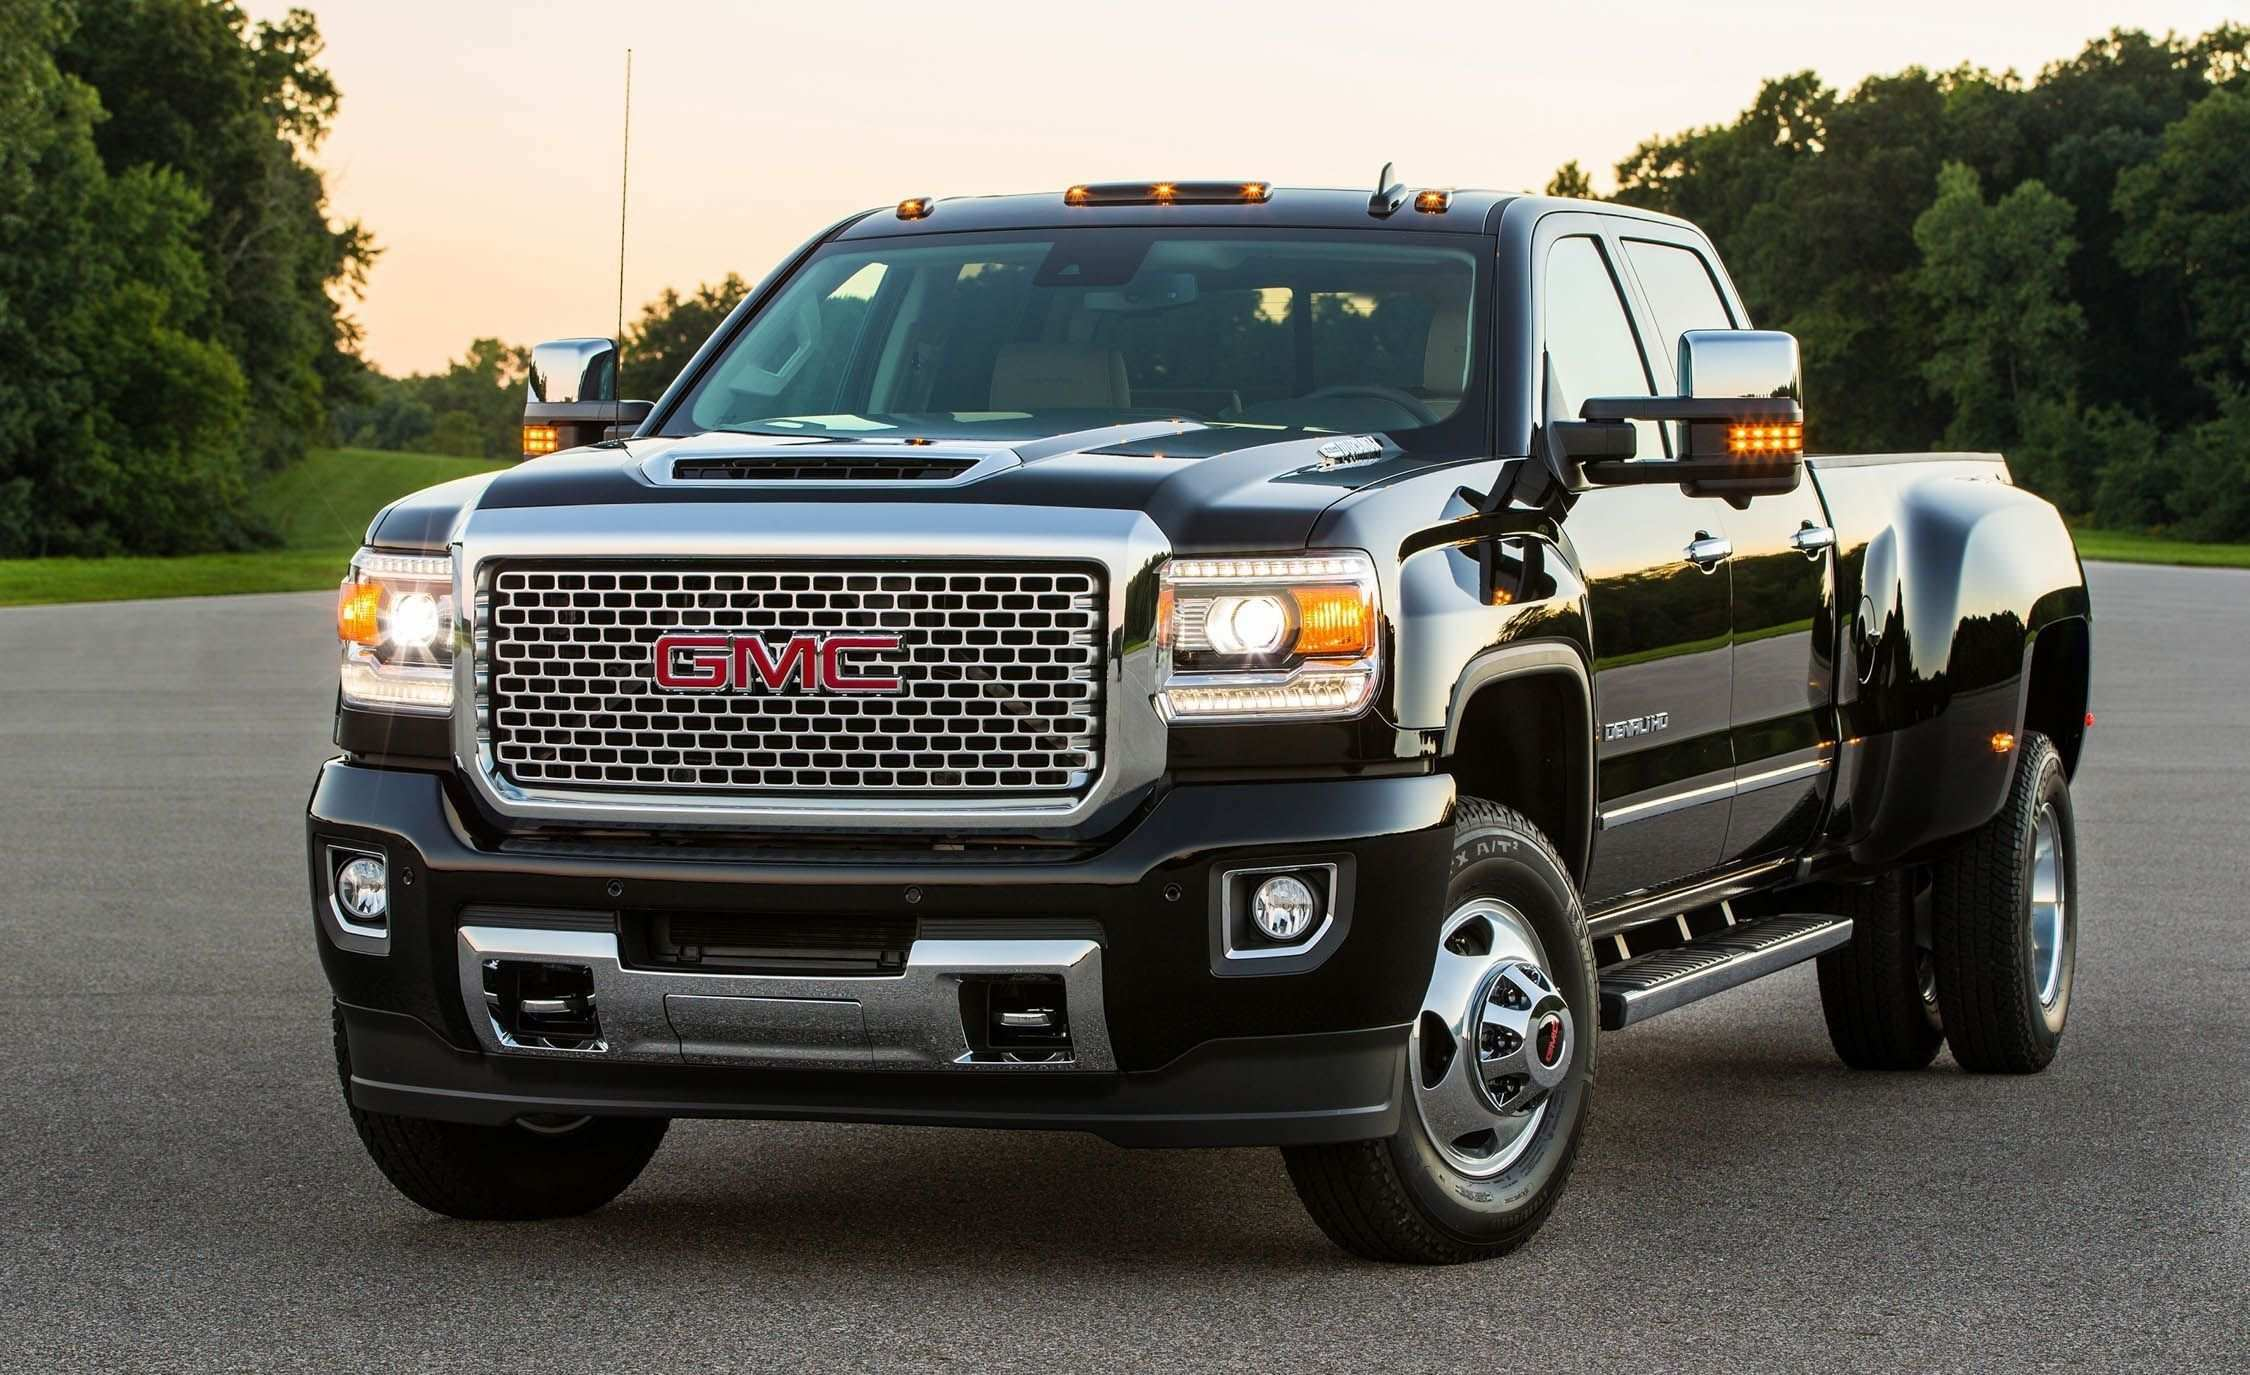 90 Best Review 2019 Gmc 2500 Price Concept with 2019 Gmc 2500 Price